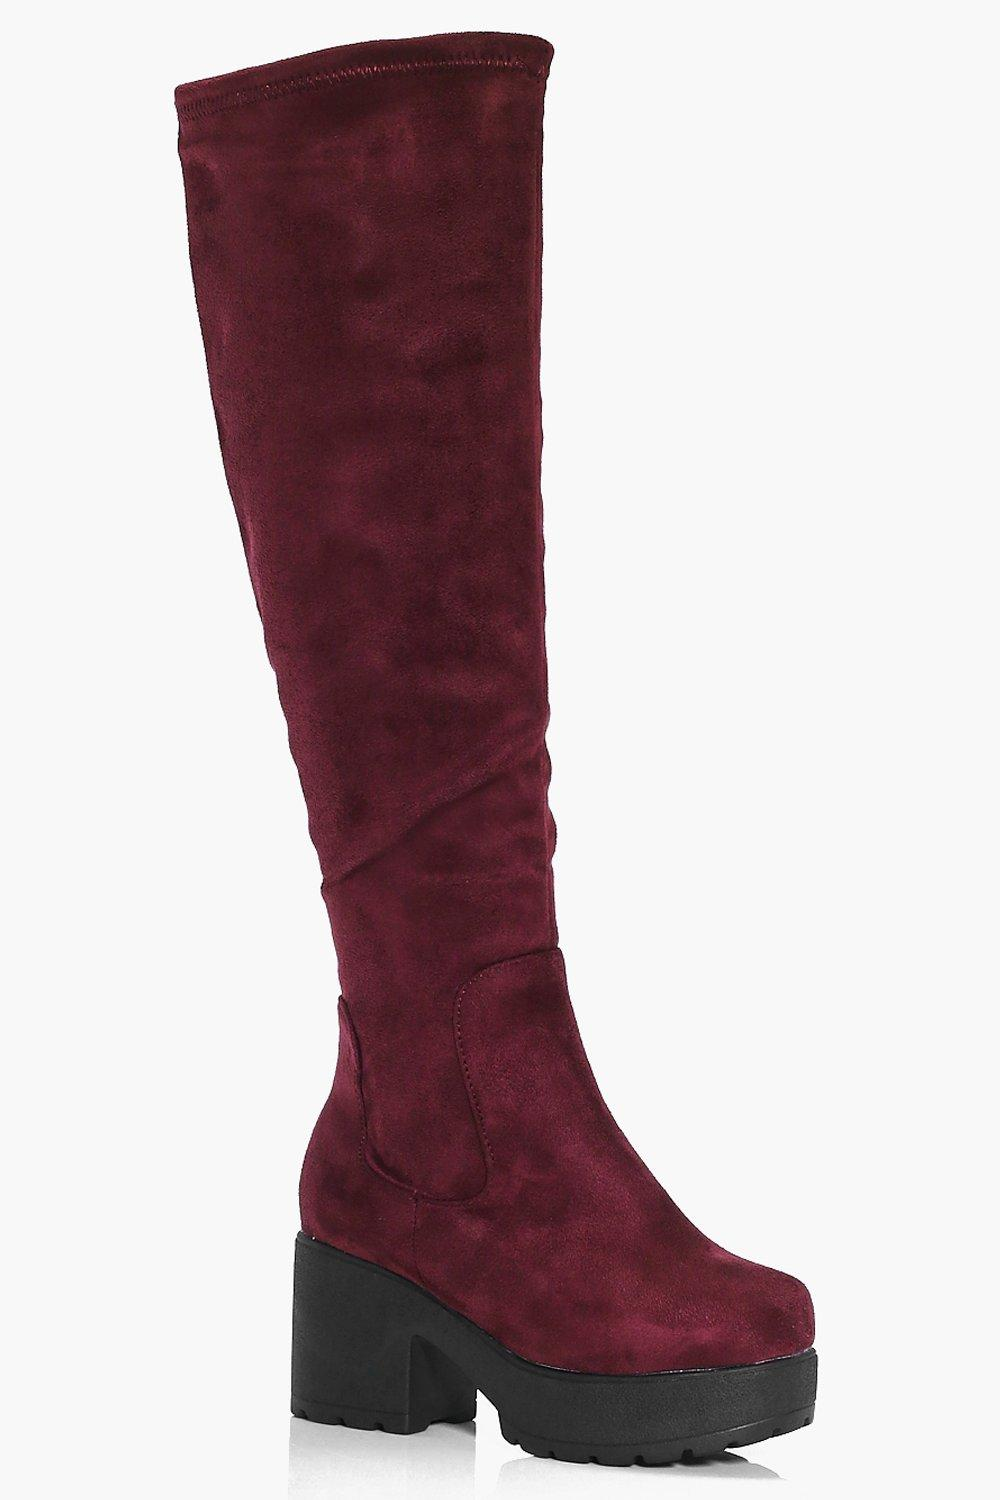 Chunky Cleated Knee High Boots  burgundy